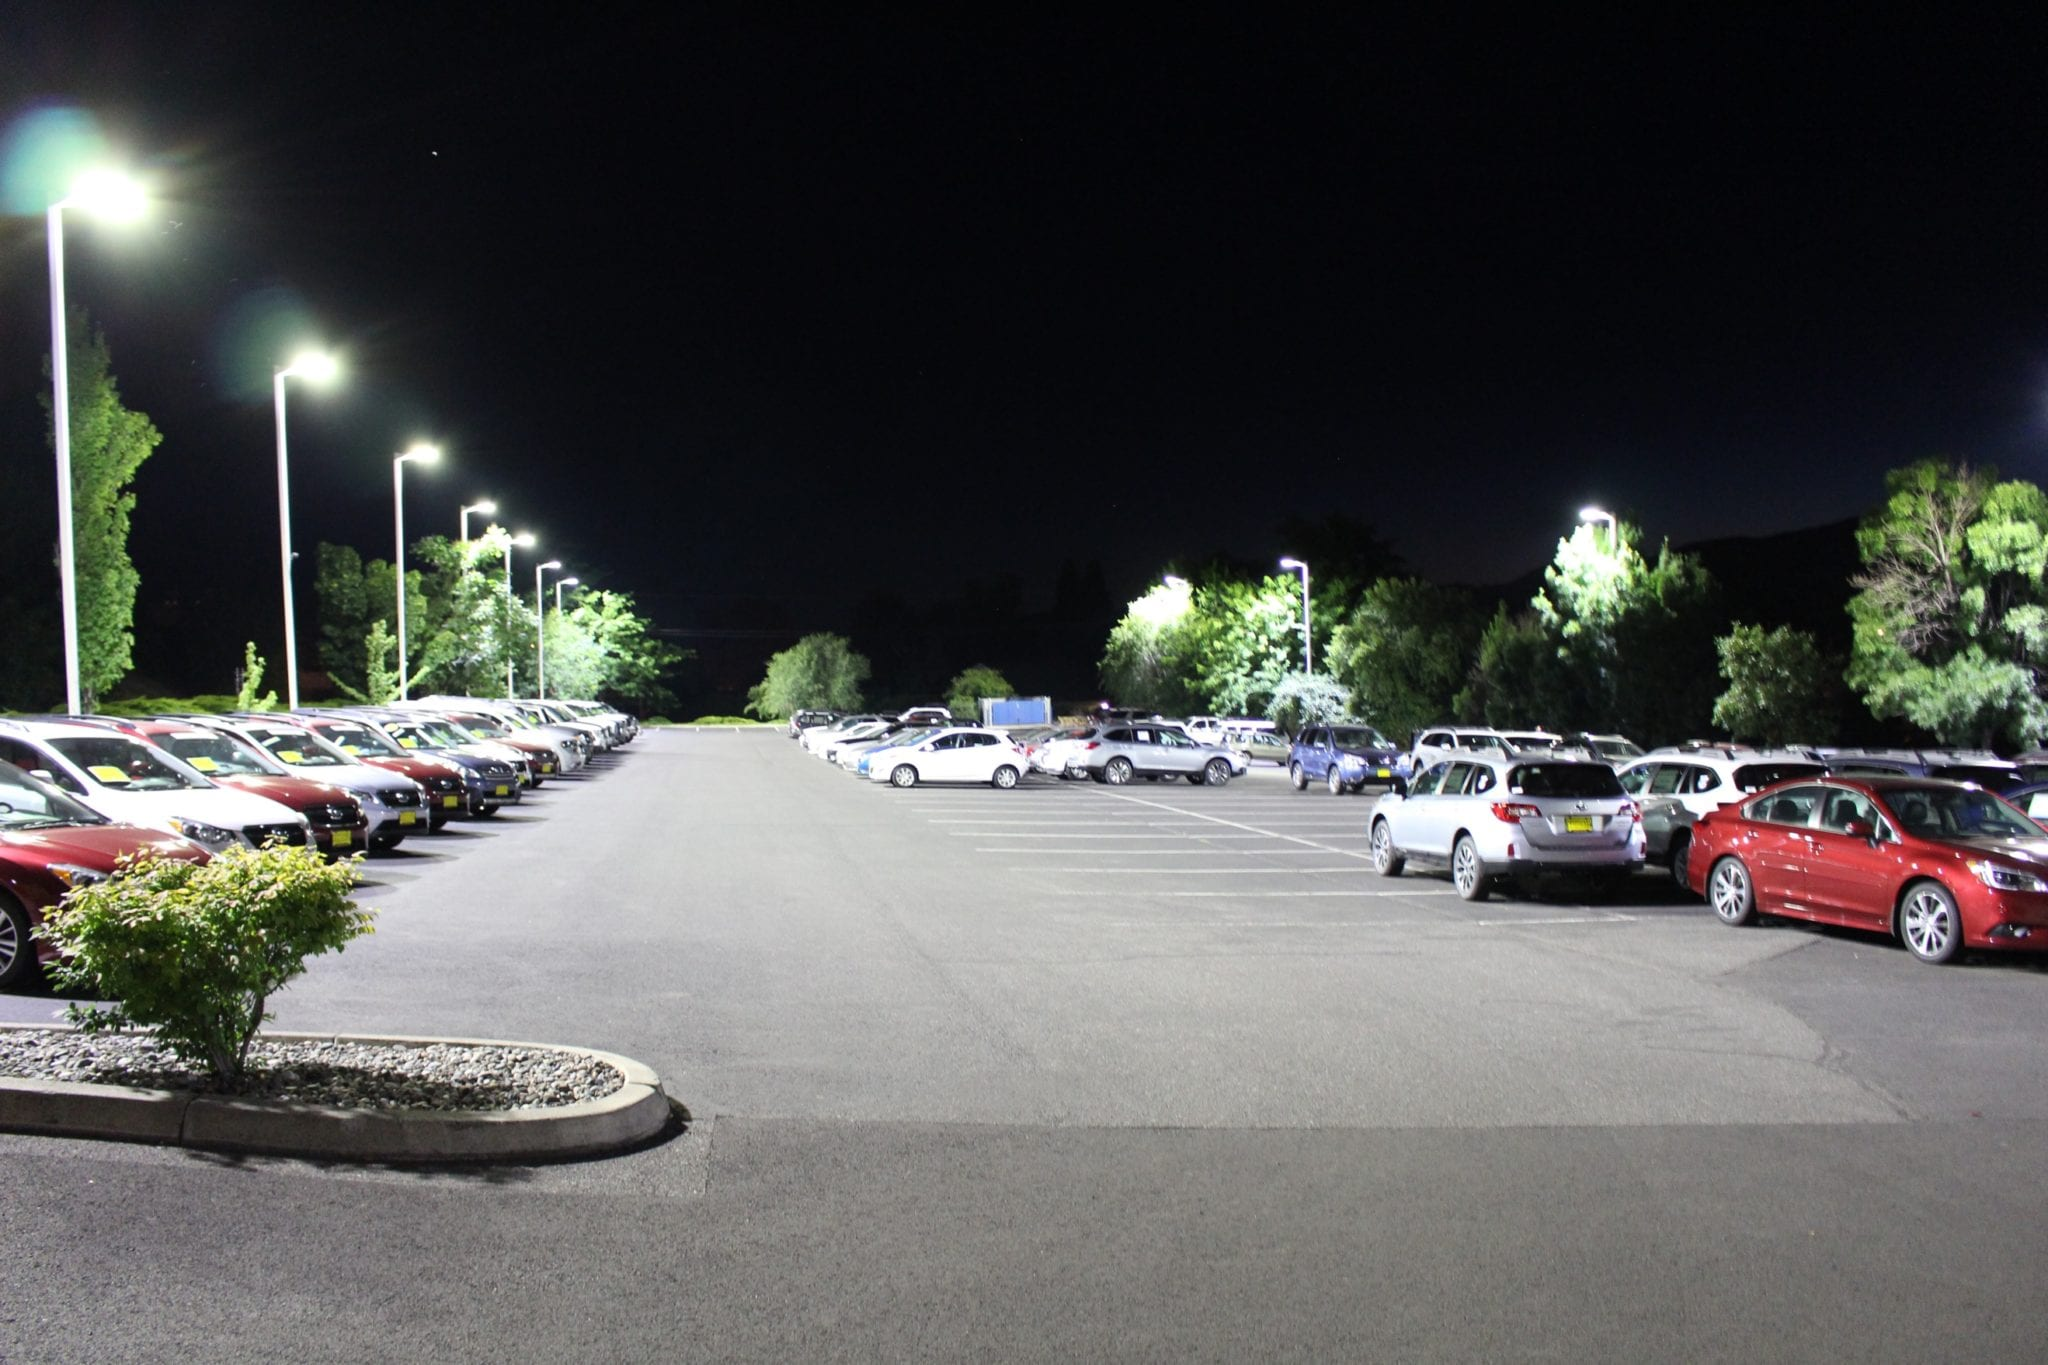 After PEC lighting Kendall Auto Group Dodge and Subaru